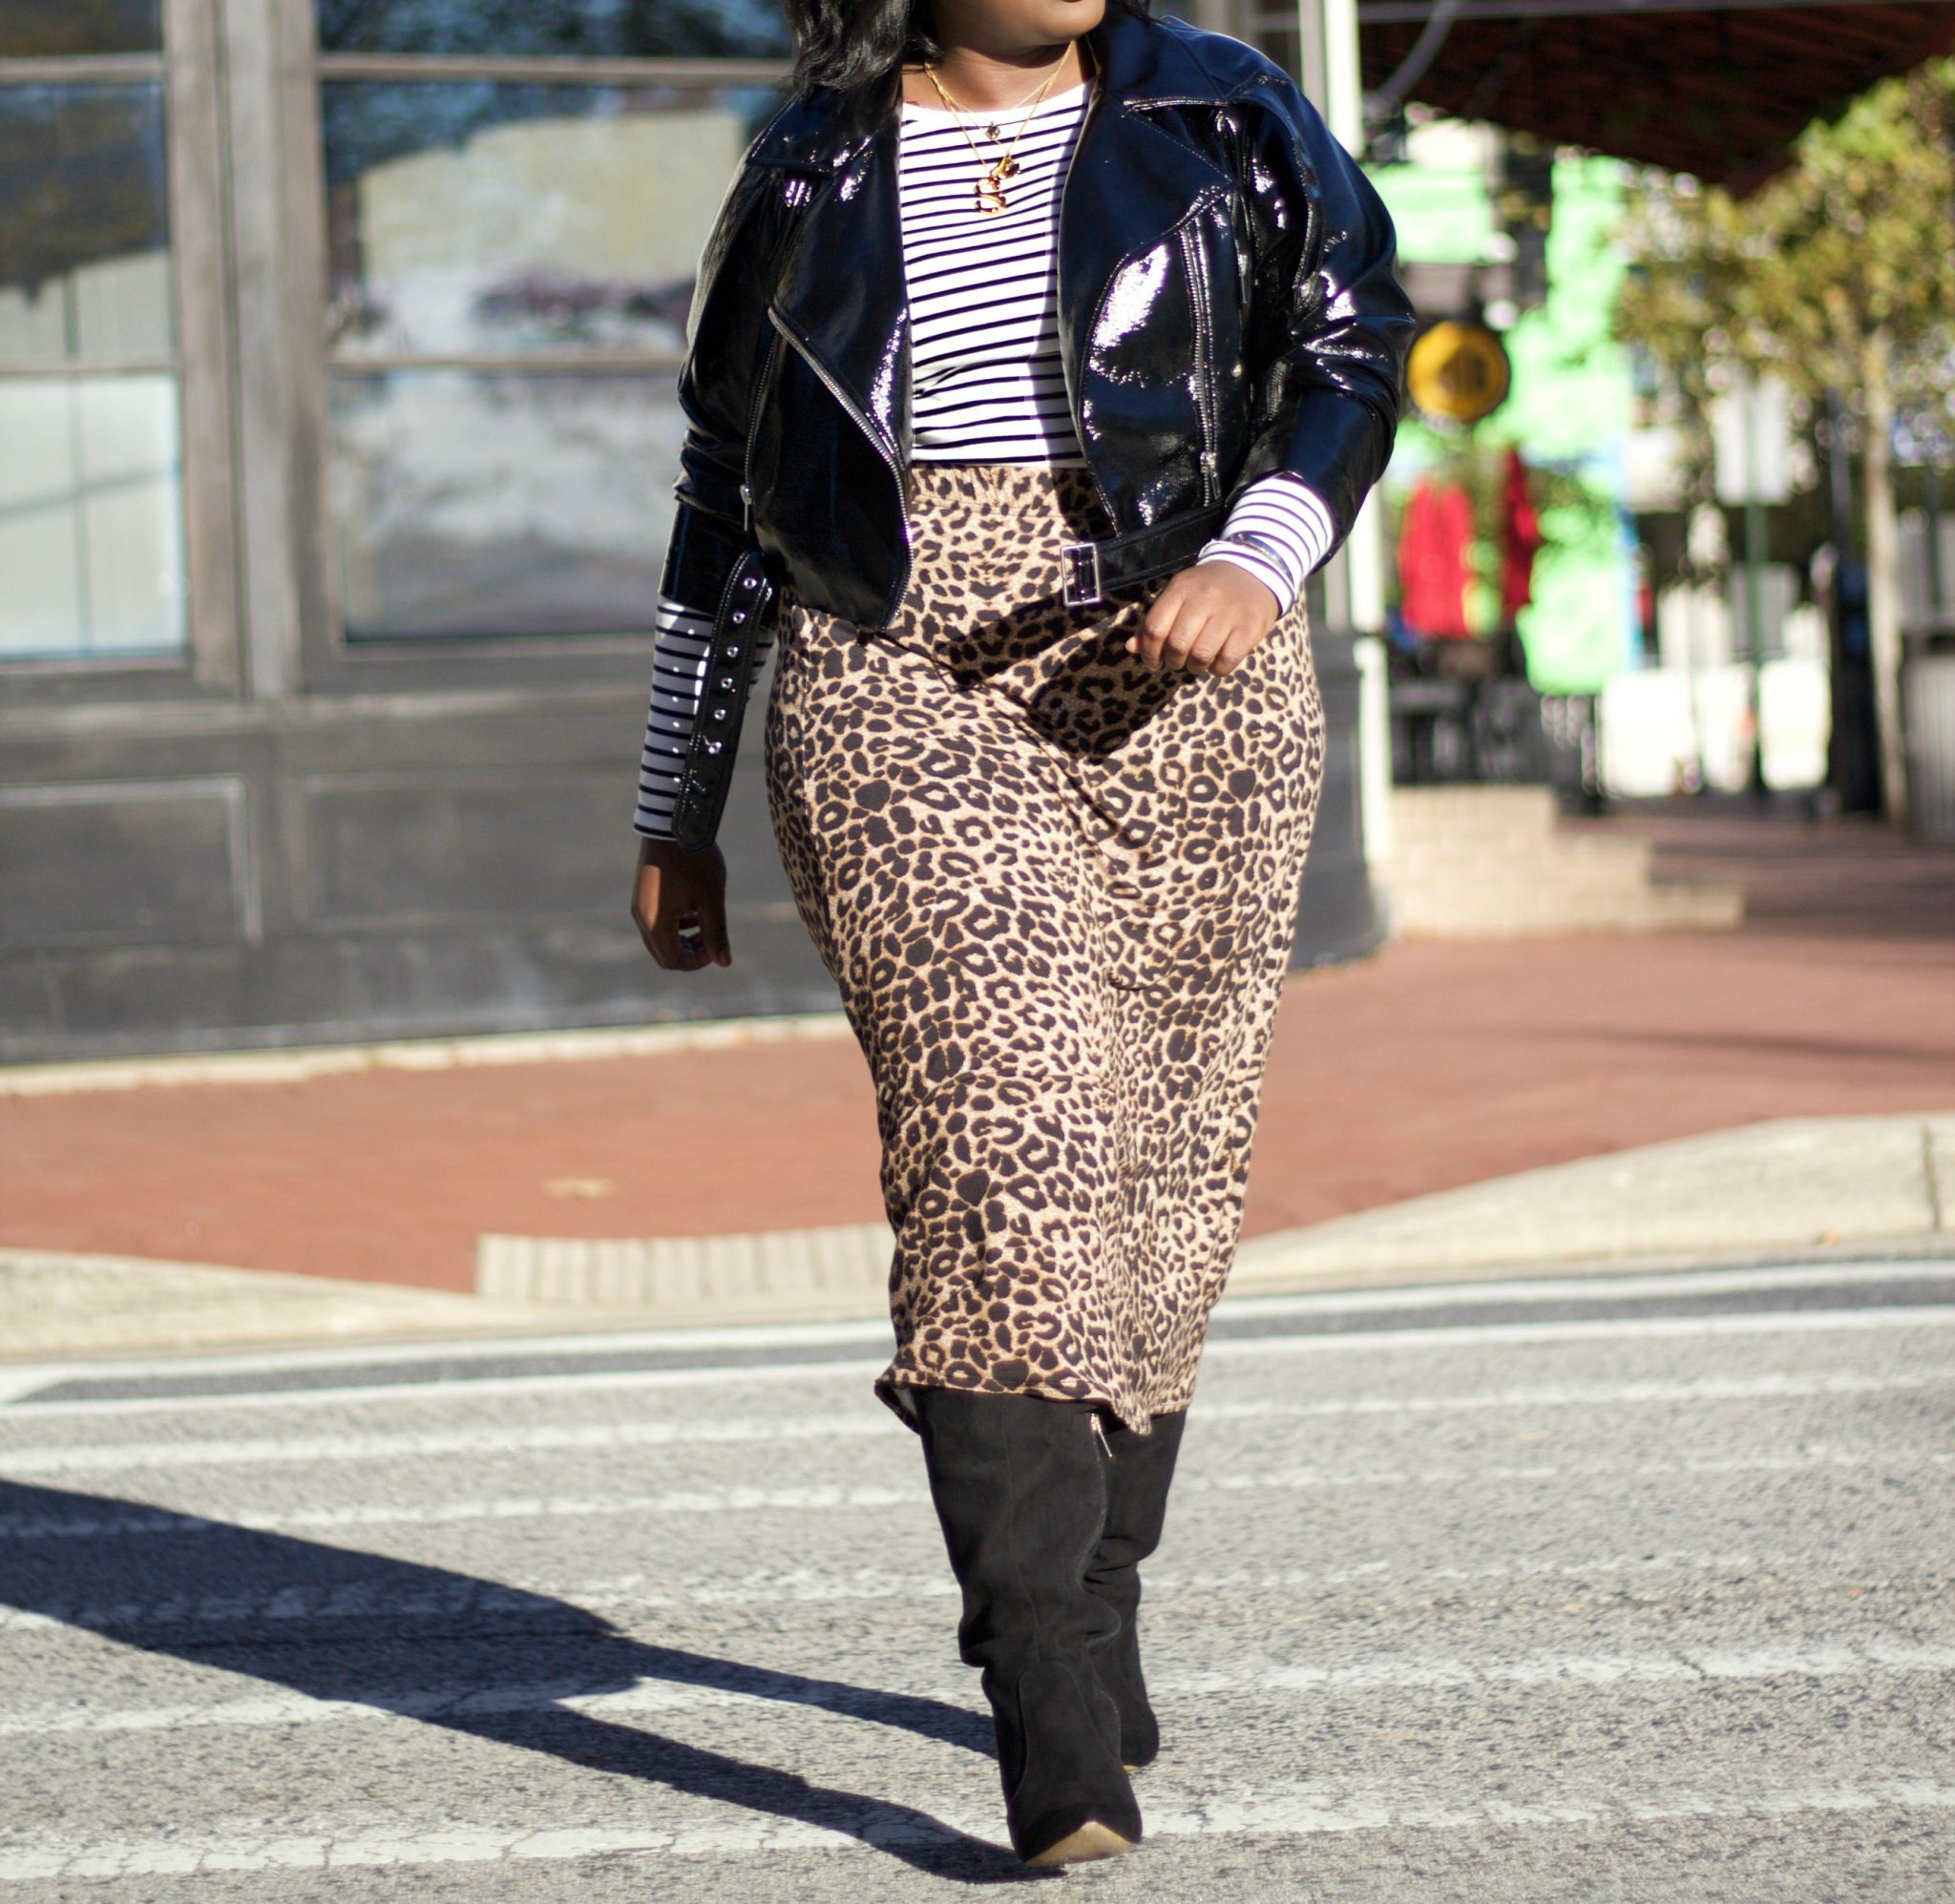 Reclaiming Your Time: 5 Ways To Be More Productive + How To Wear Animal Print Now